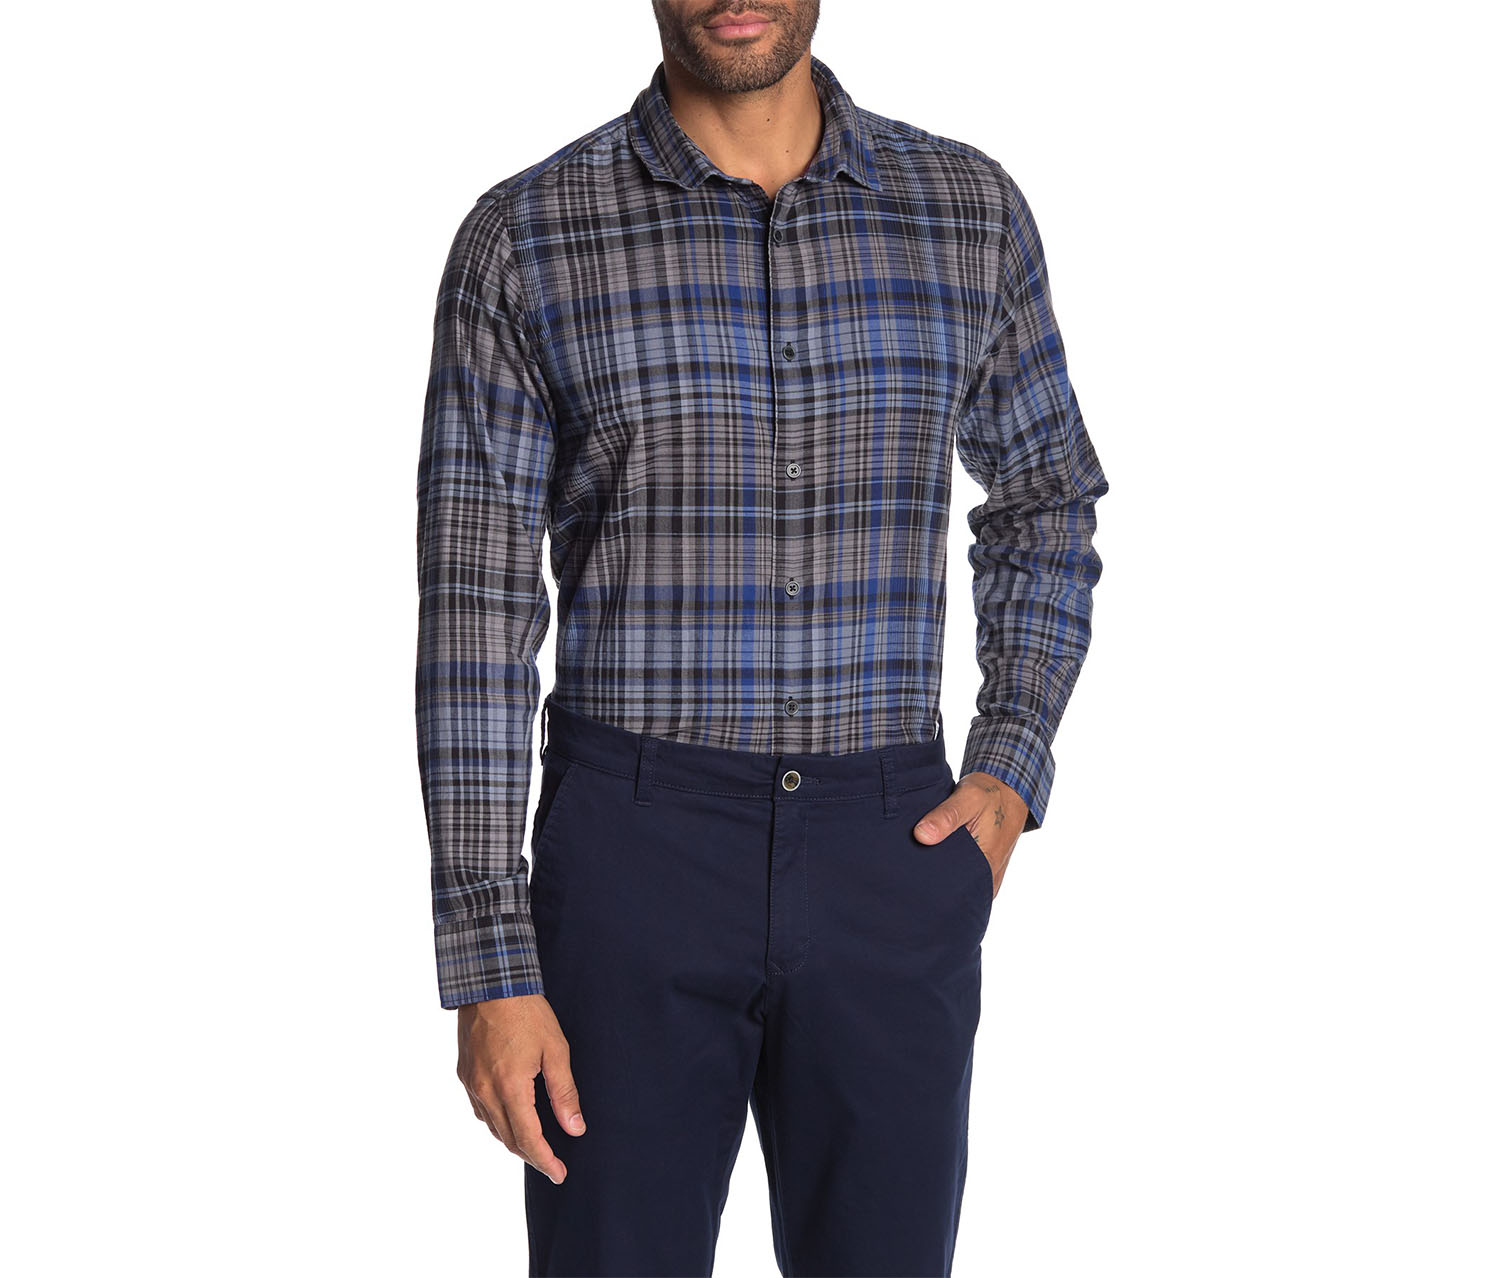 IKE Behar Men's Plaid Long Sleeve Shirt, Blue/Black